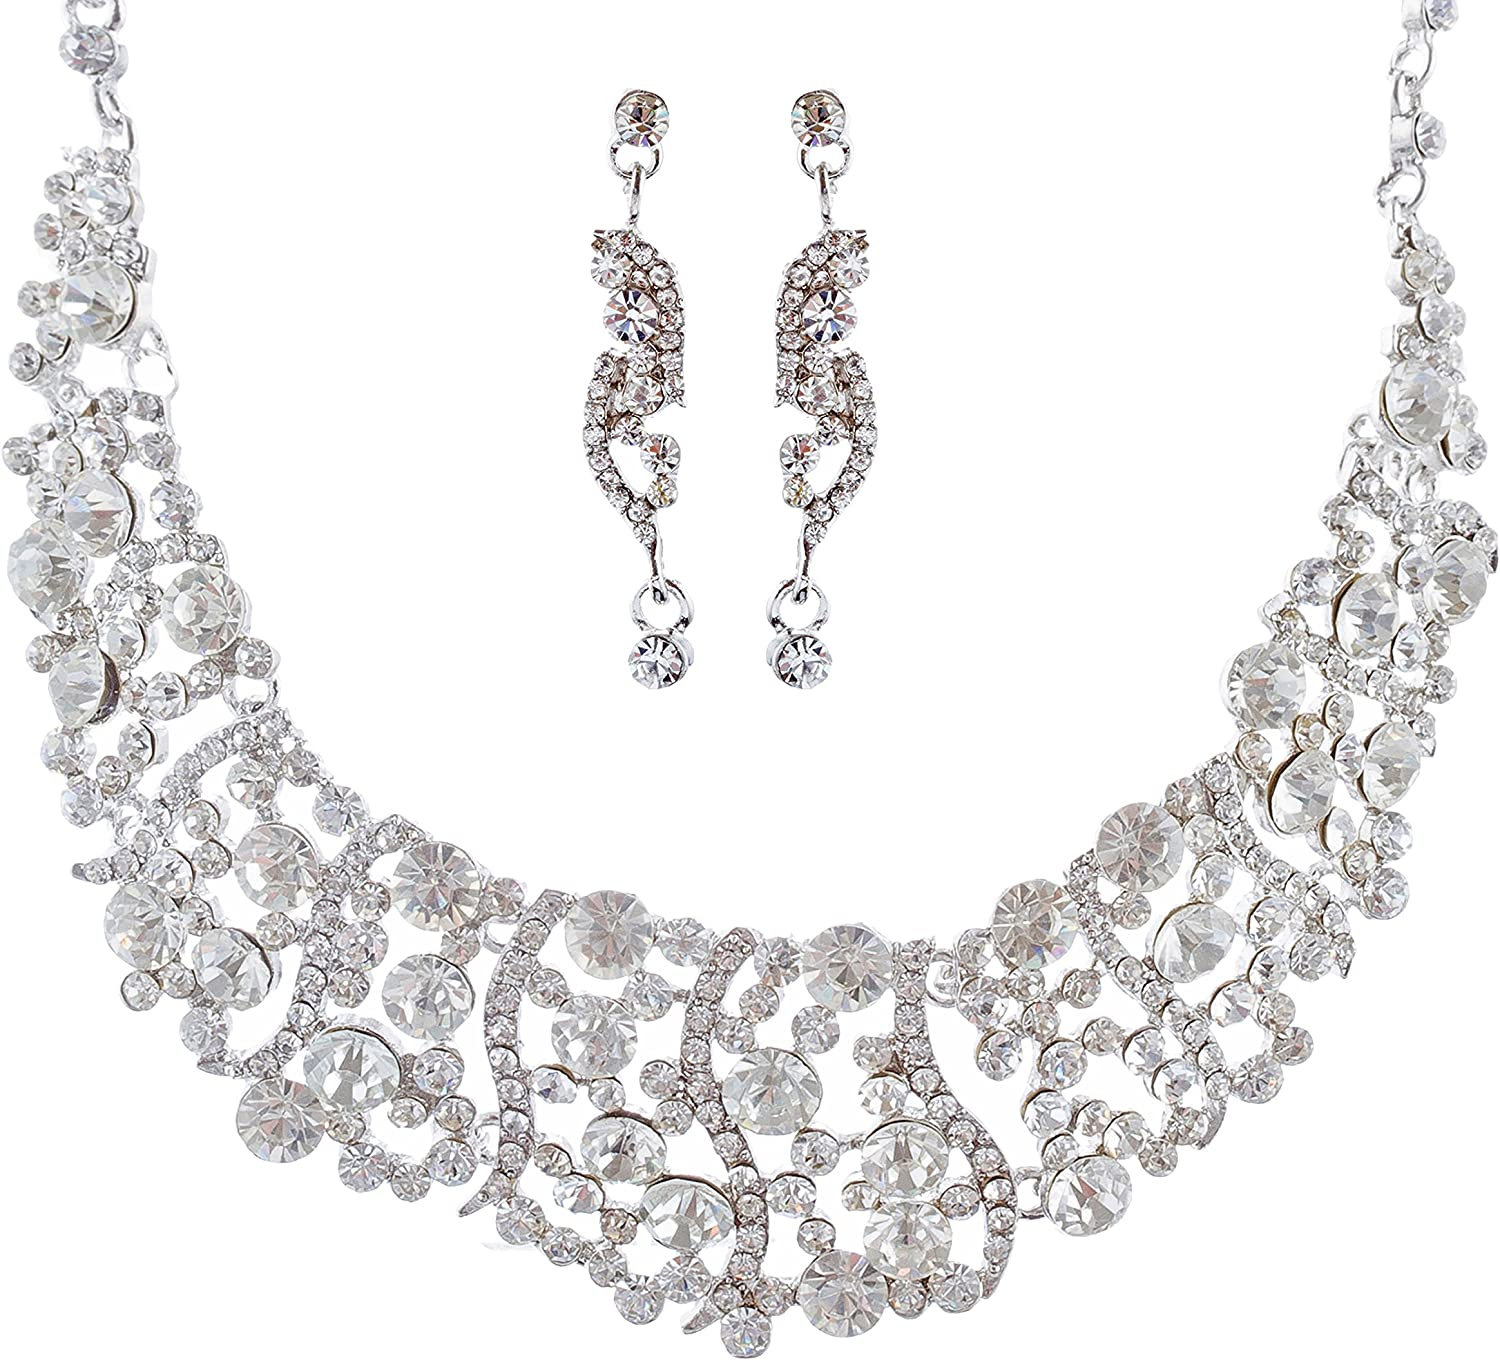 Accessoriesforever Opening large release Brand new sale Women Bridal Wedding Set Jewelry Cry Necklace